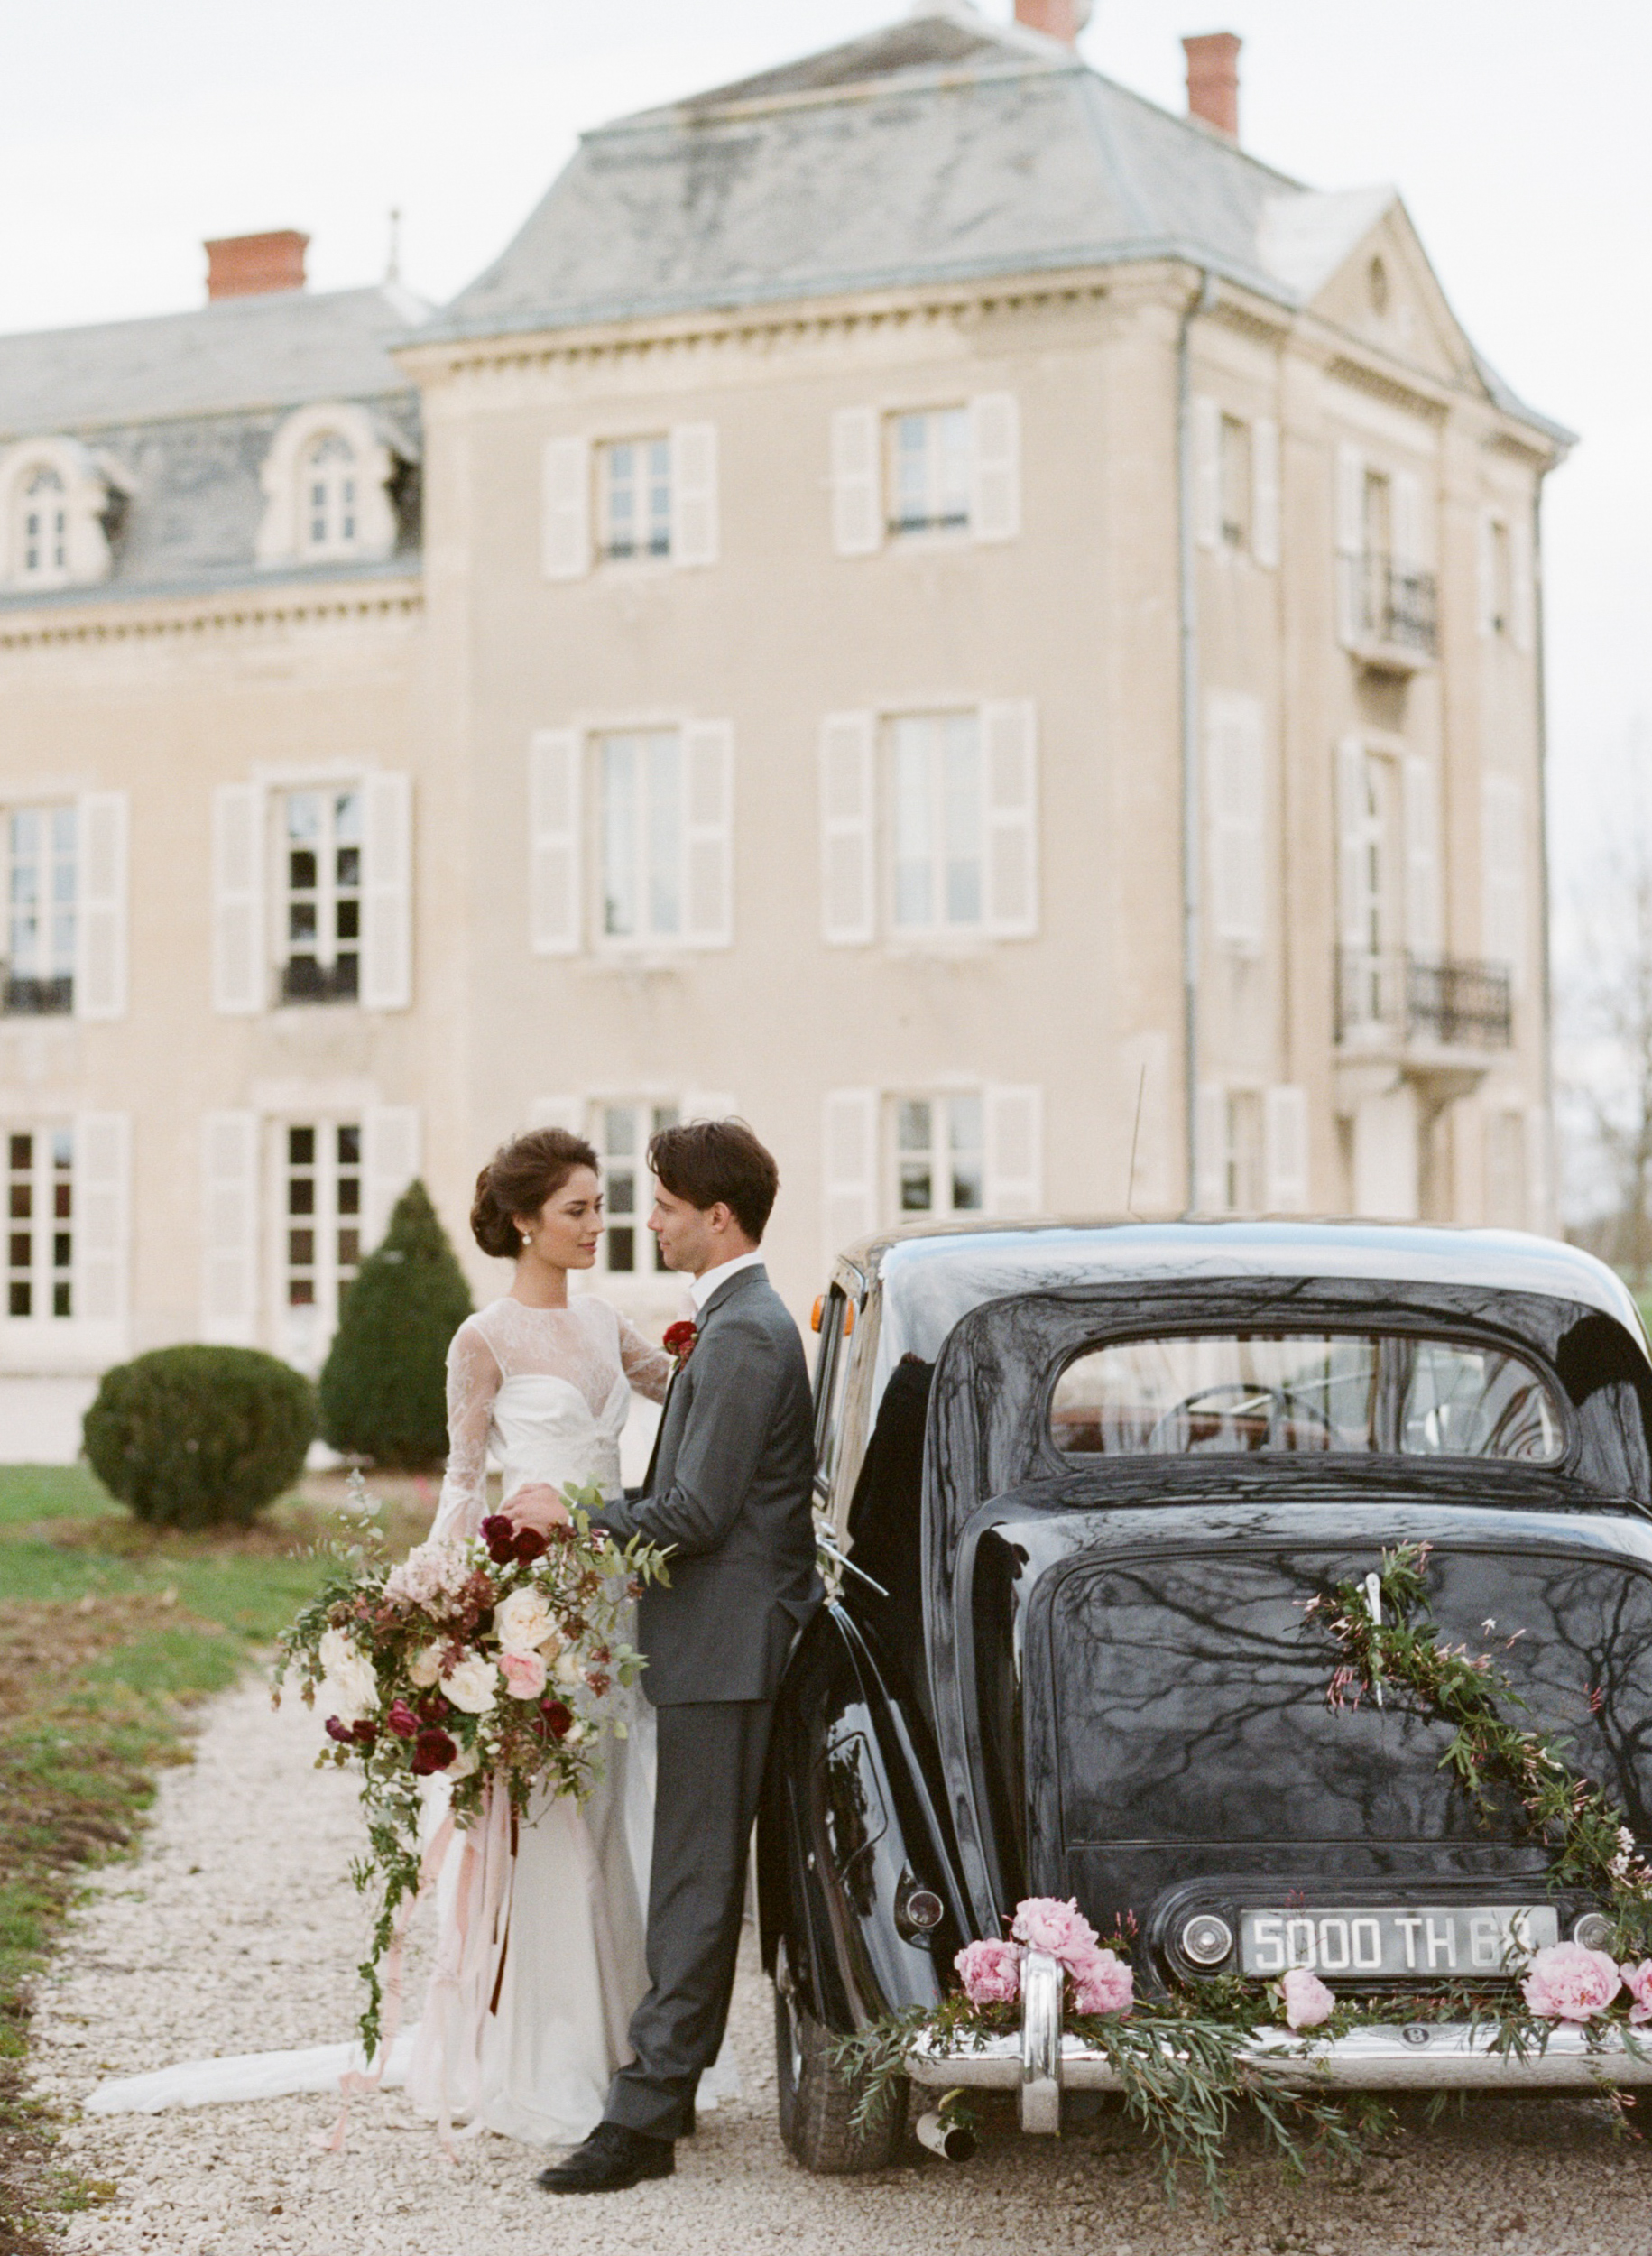 A bride and groom kiss after their wedding at a chapel in Burgundy, France; Sylvie Gil Photography